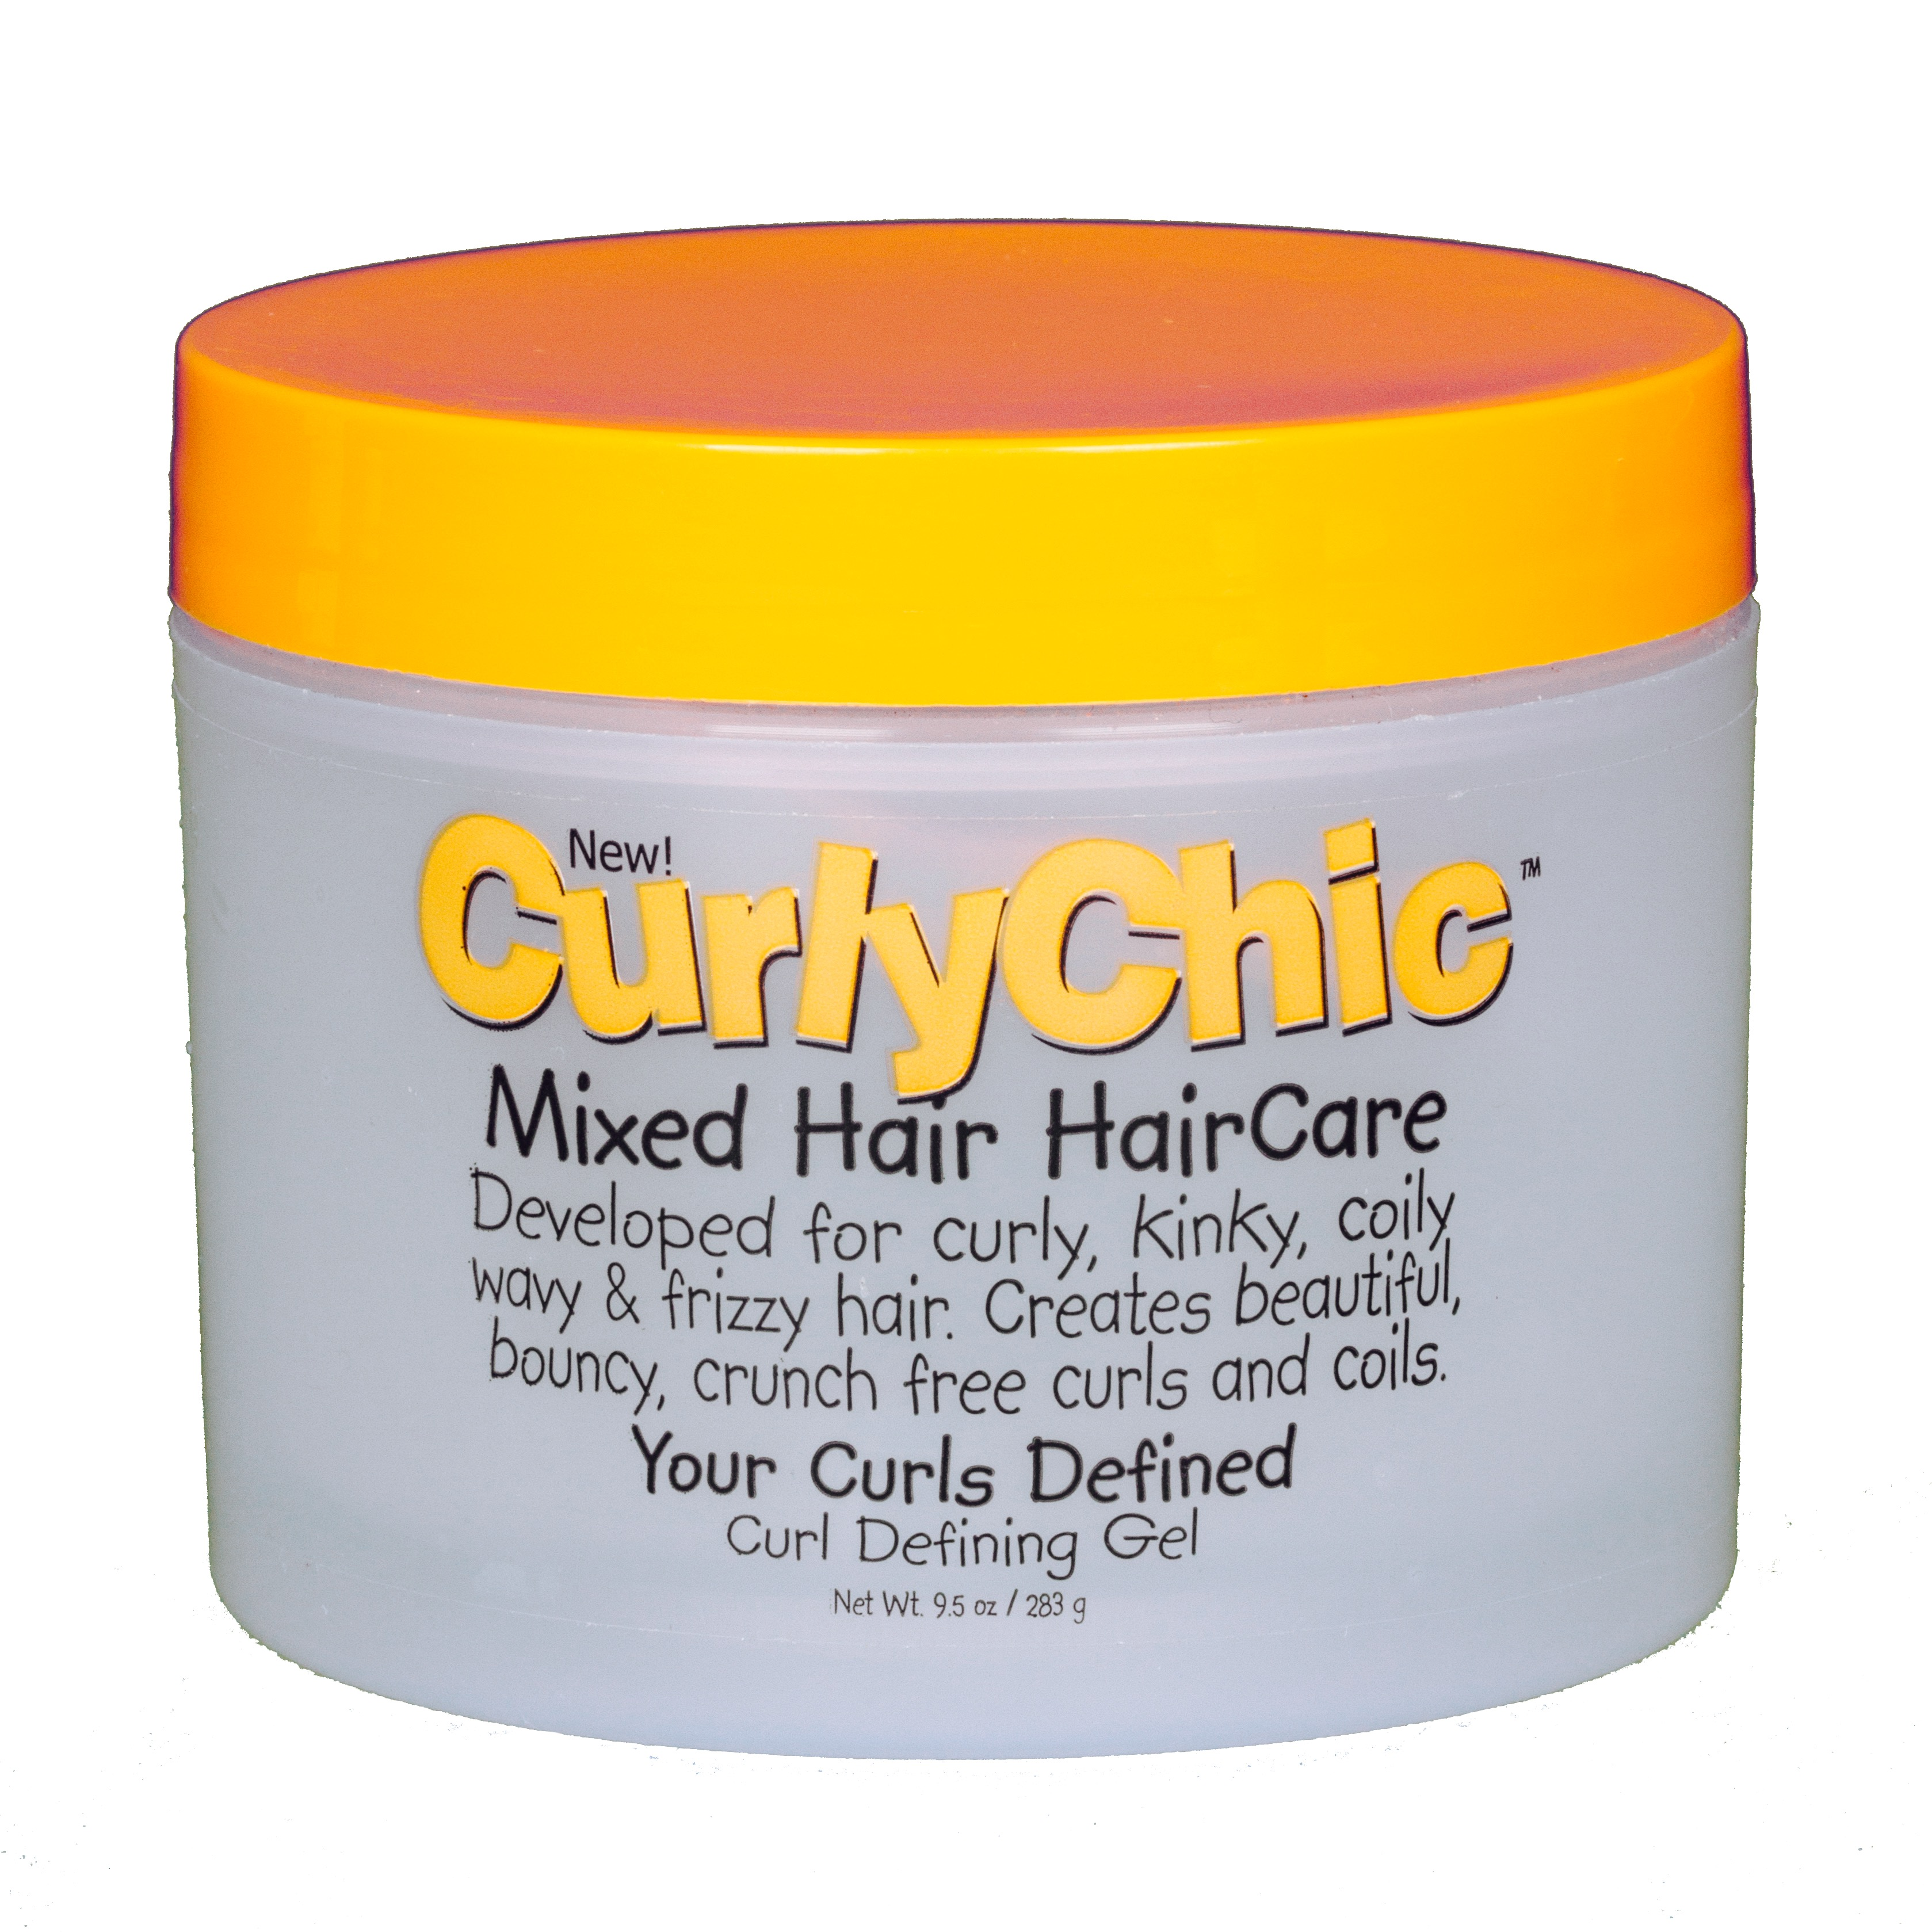 Curly Chic Curly Chic Your Curls Defined Curl Defining